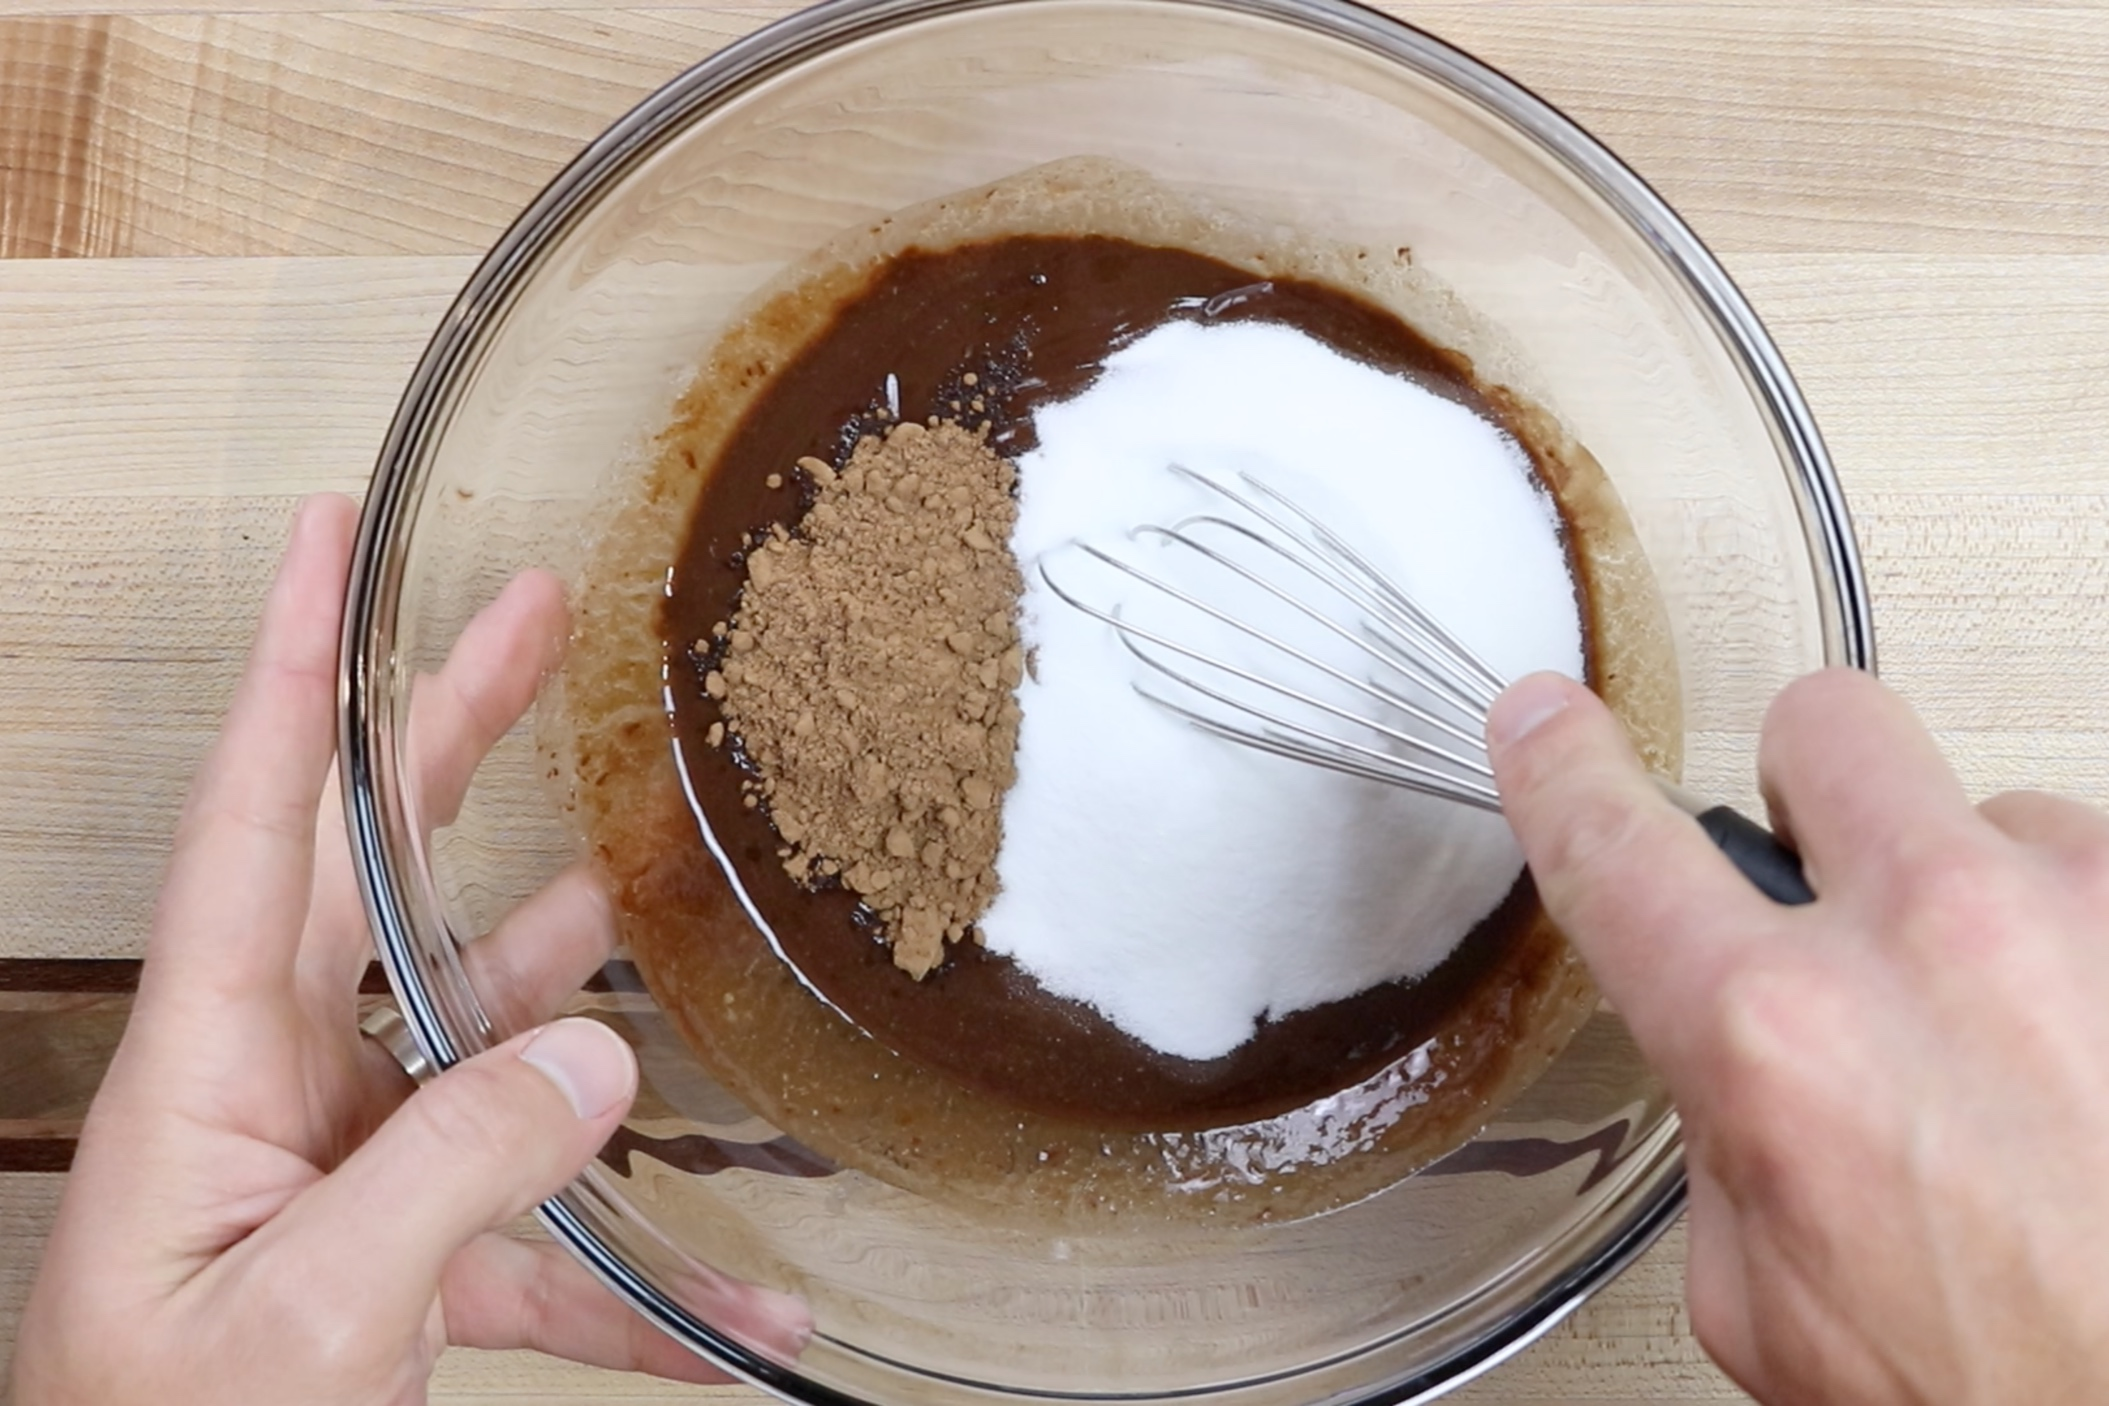 5. Add the cocoa powder and sugar to the melted chocolate. Stir until combined. -